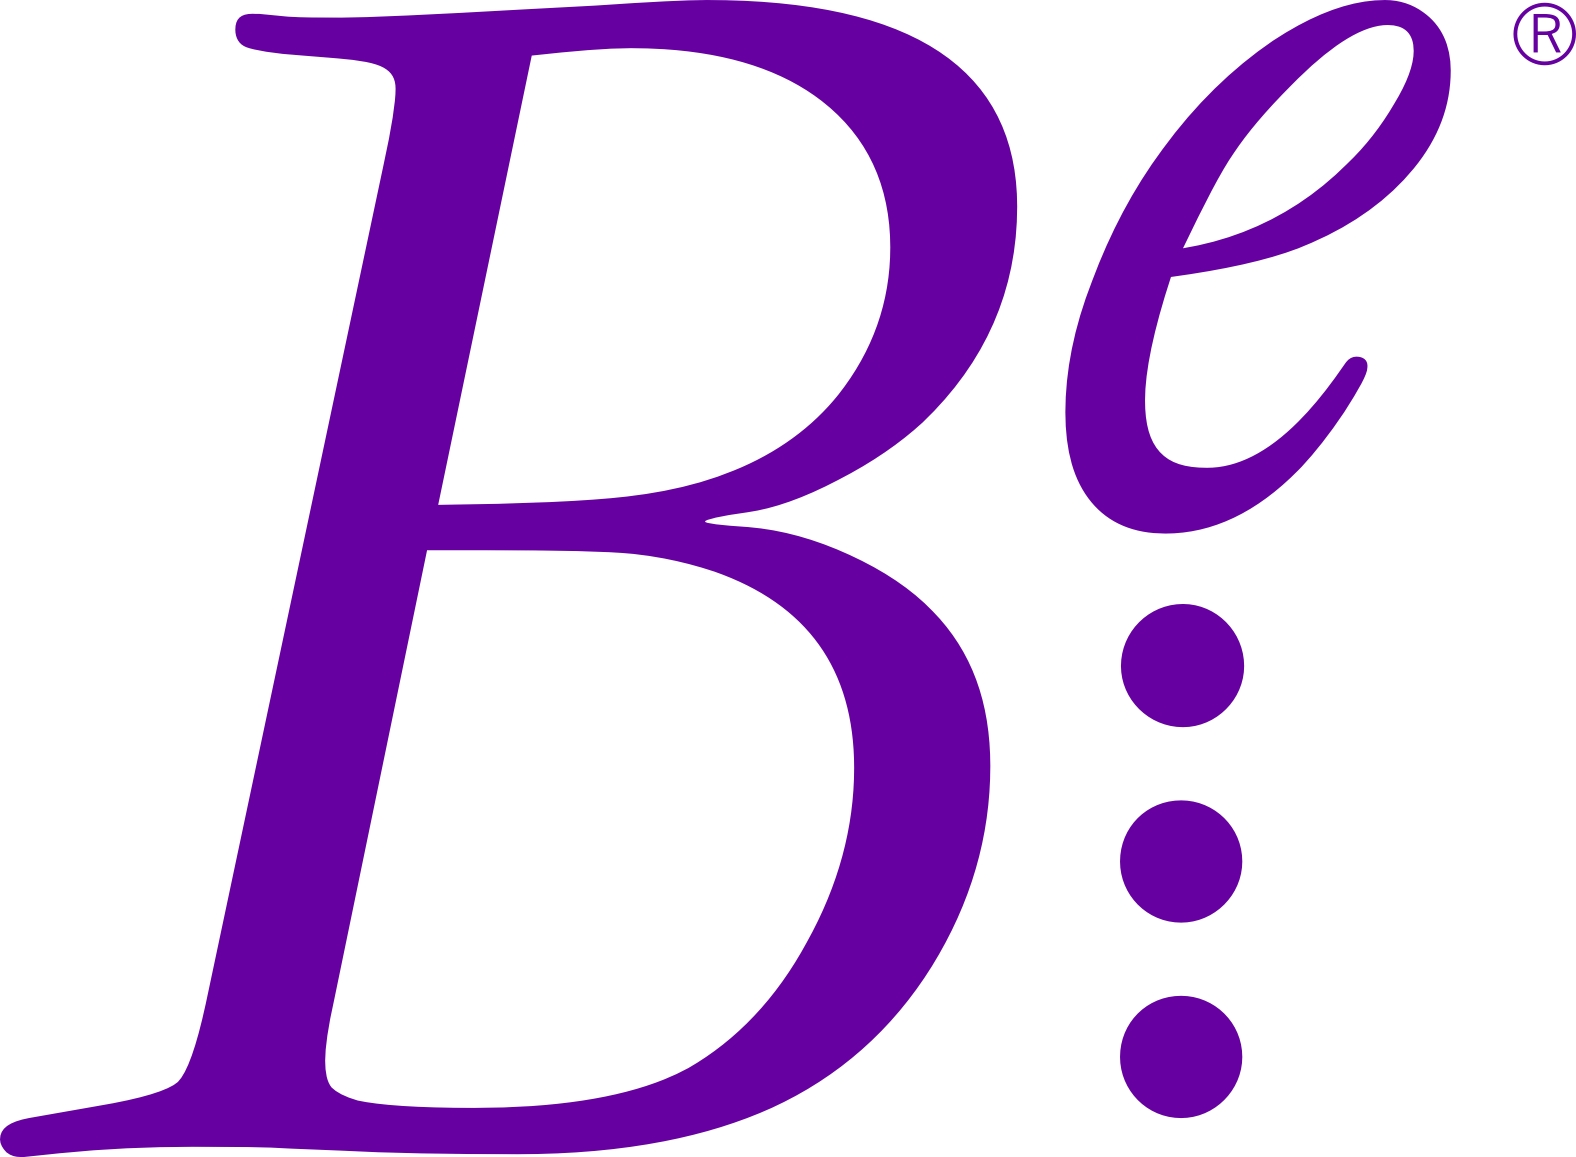 Be Personnel Logo R Violet - April 2012